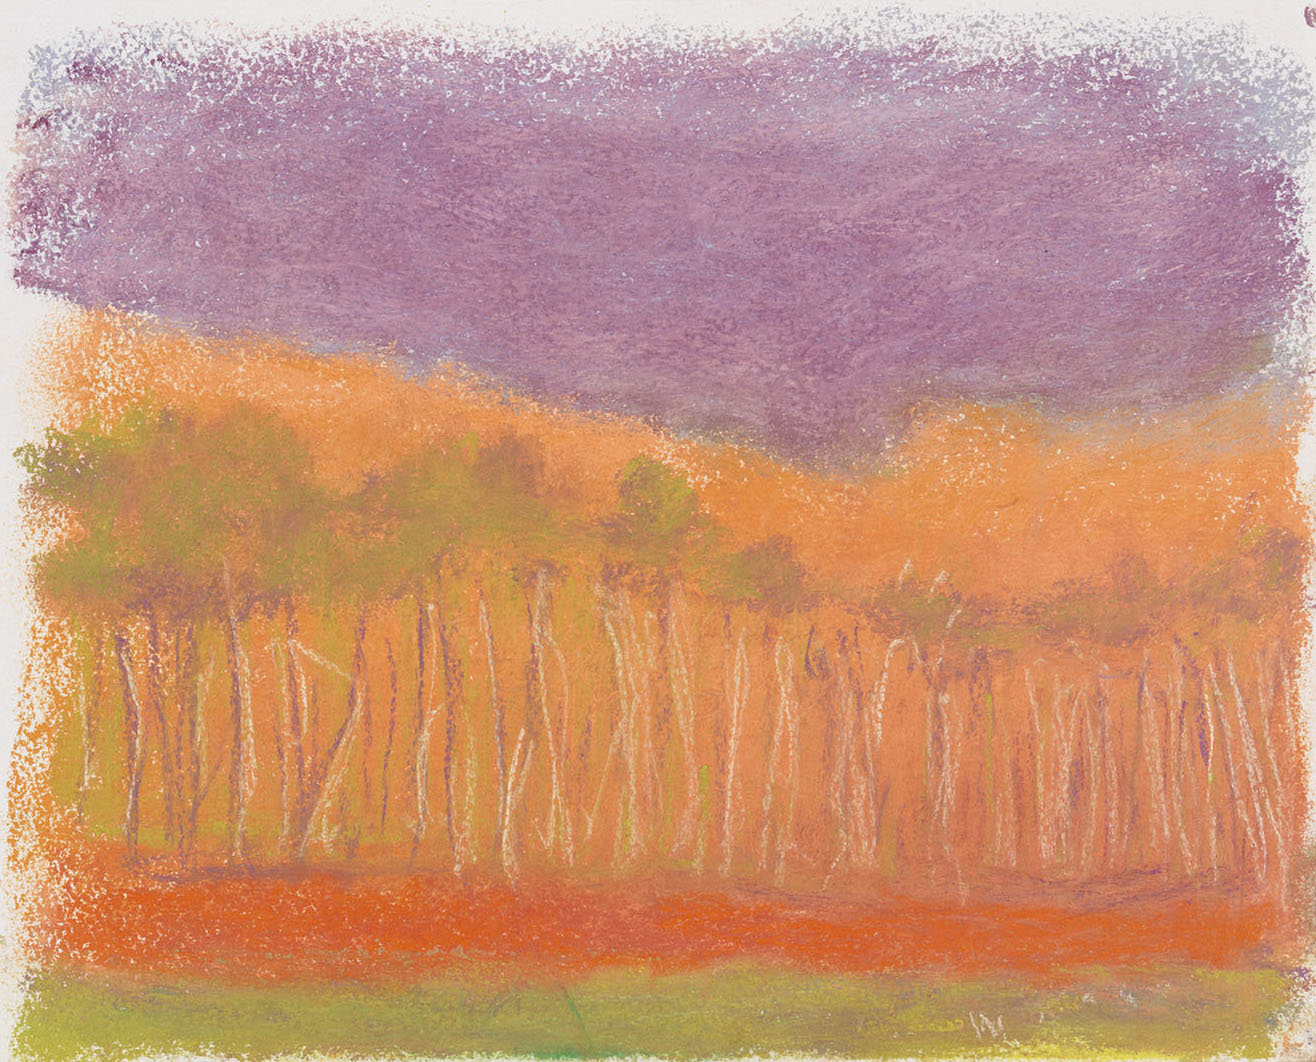 Red Earth , 2015 Pastel on paper 9 x 12 inches